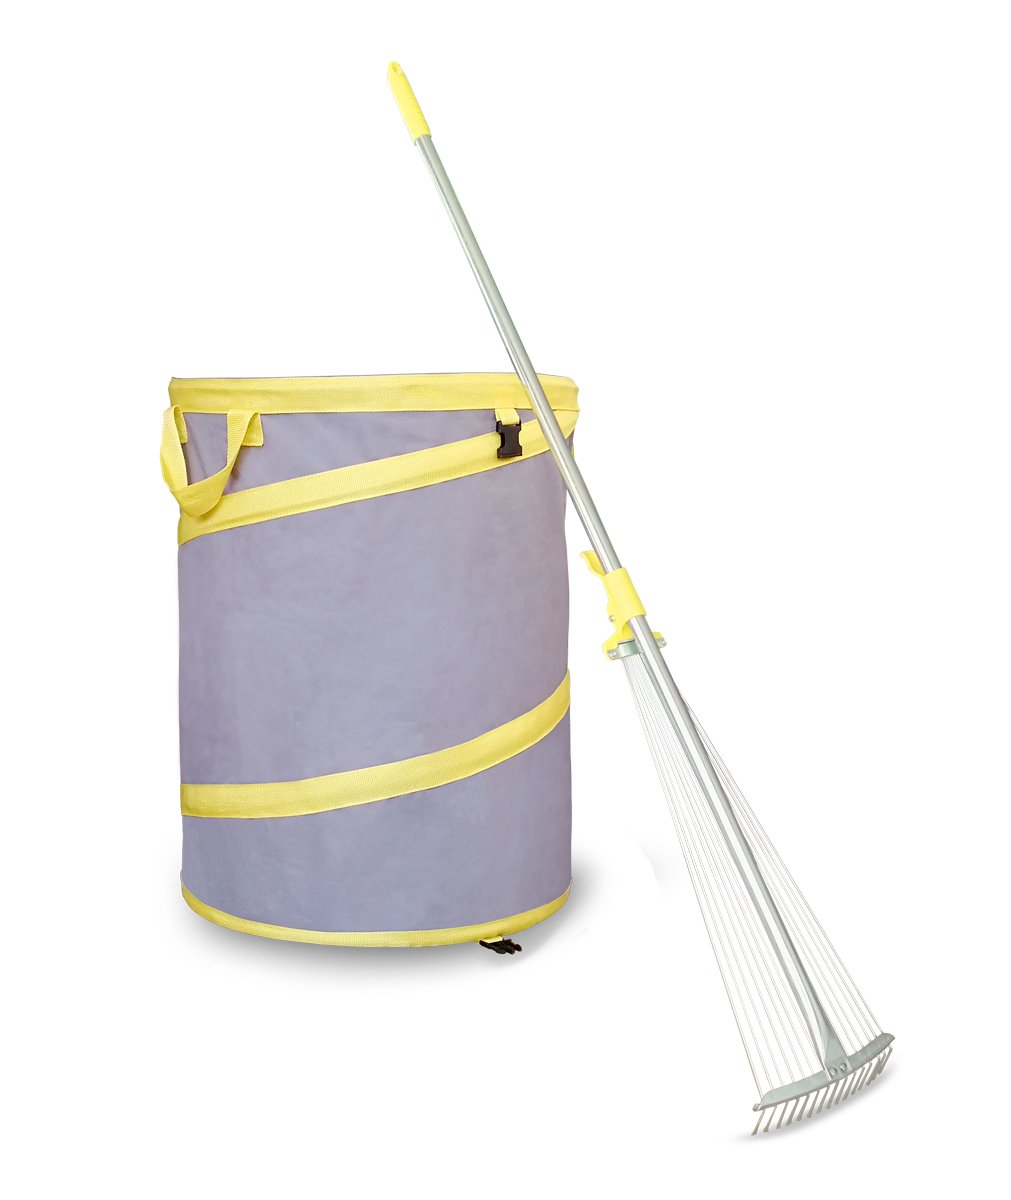 Jardineer 2 Piece Gardening Tools with Expandable Garden Leaf Rakes, Reusable Yard Waste Bags, Yard Tools with Adjustable Yard Rake for Leaves, Collapsible Trash Can, Heavy Duty Leaf Bags